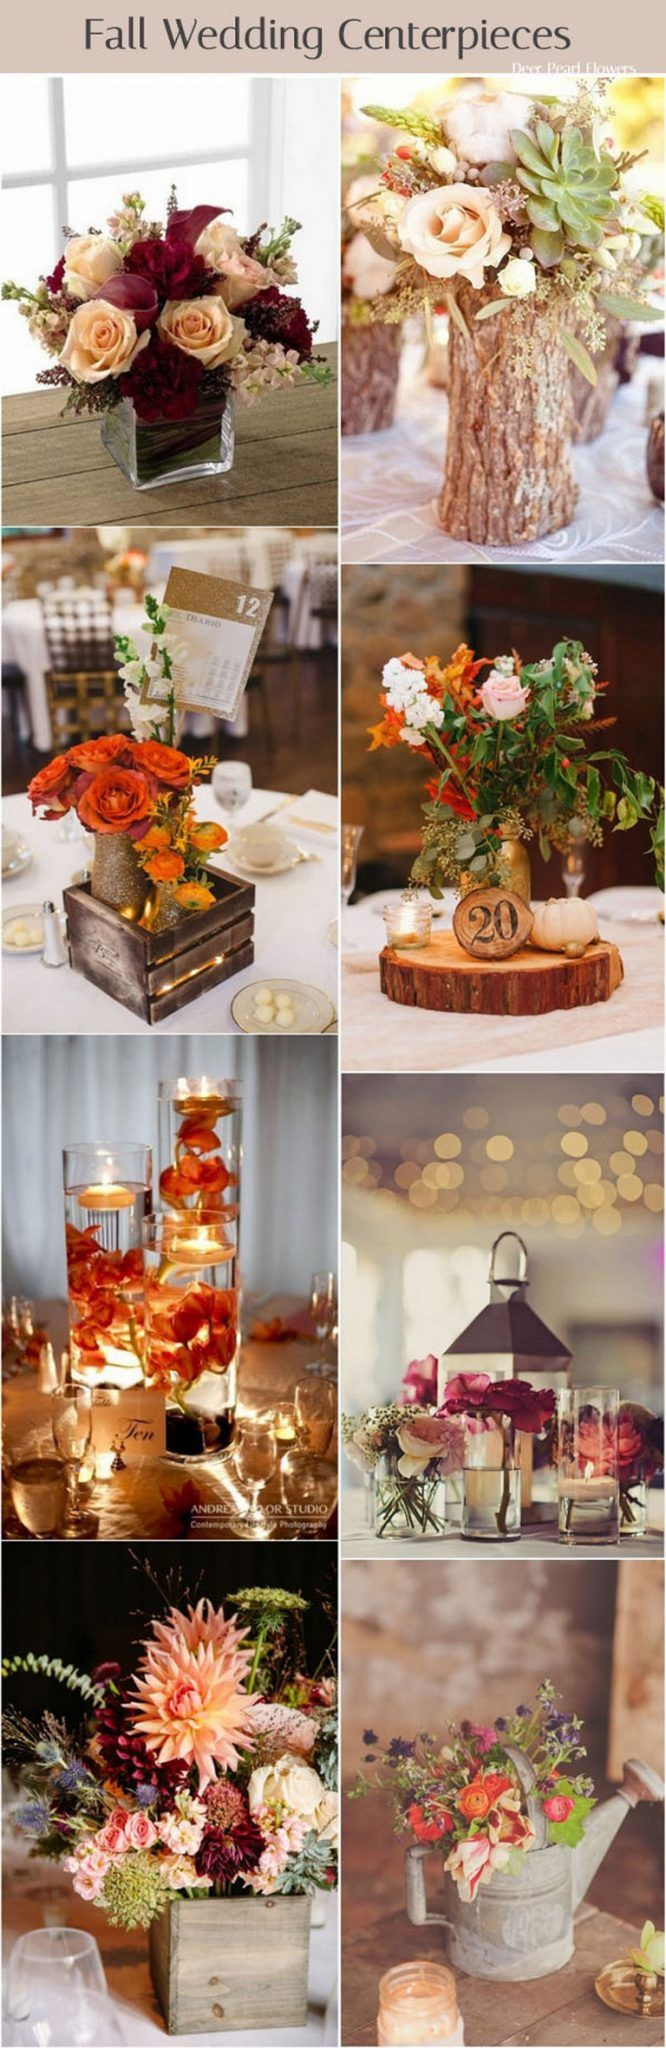 Decoration images for wedding  Fun and Easy Fall Wedding Decoration Ideas  DIY Photos  Other